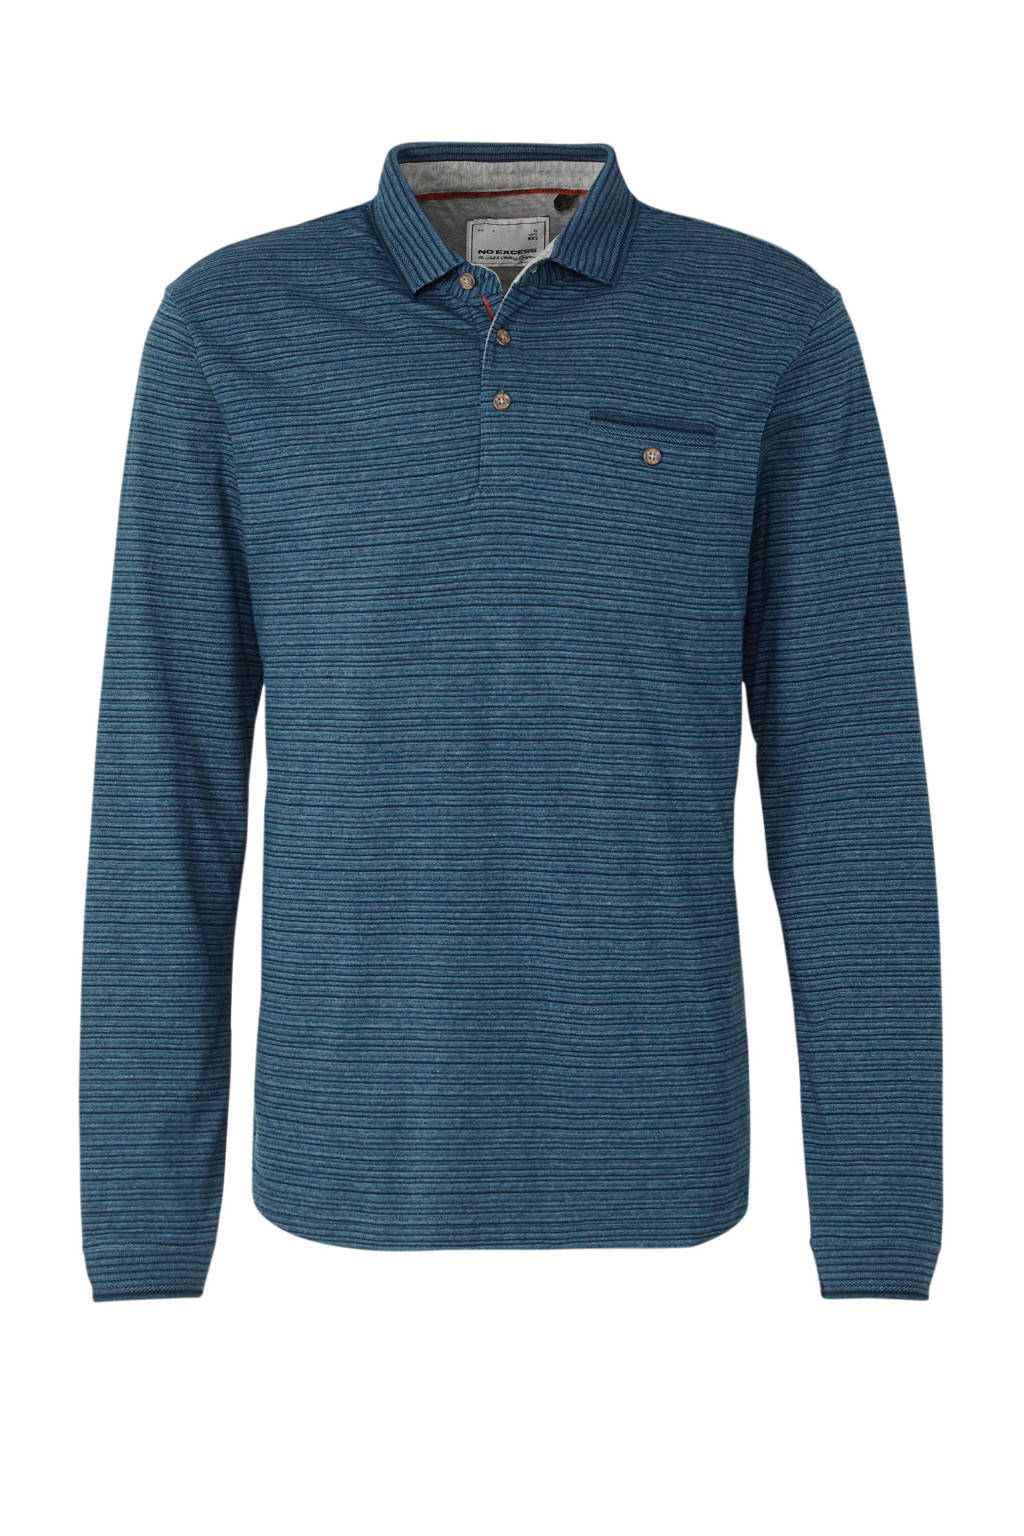 No Excess gestreepte regular fit polo donkerblauw, Donkerblauw